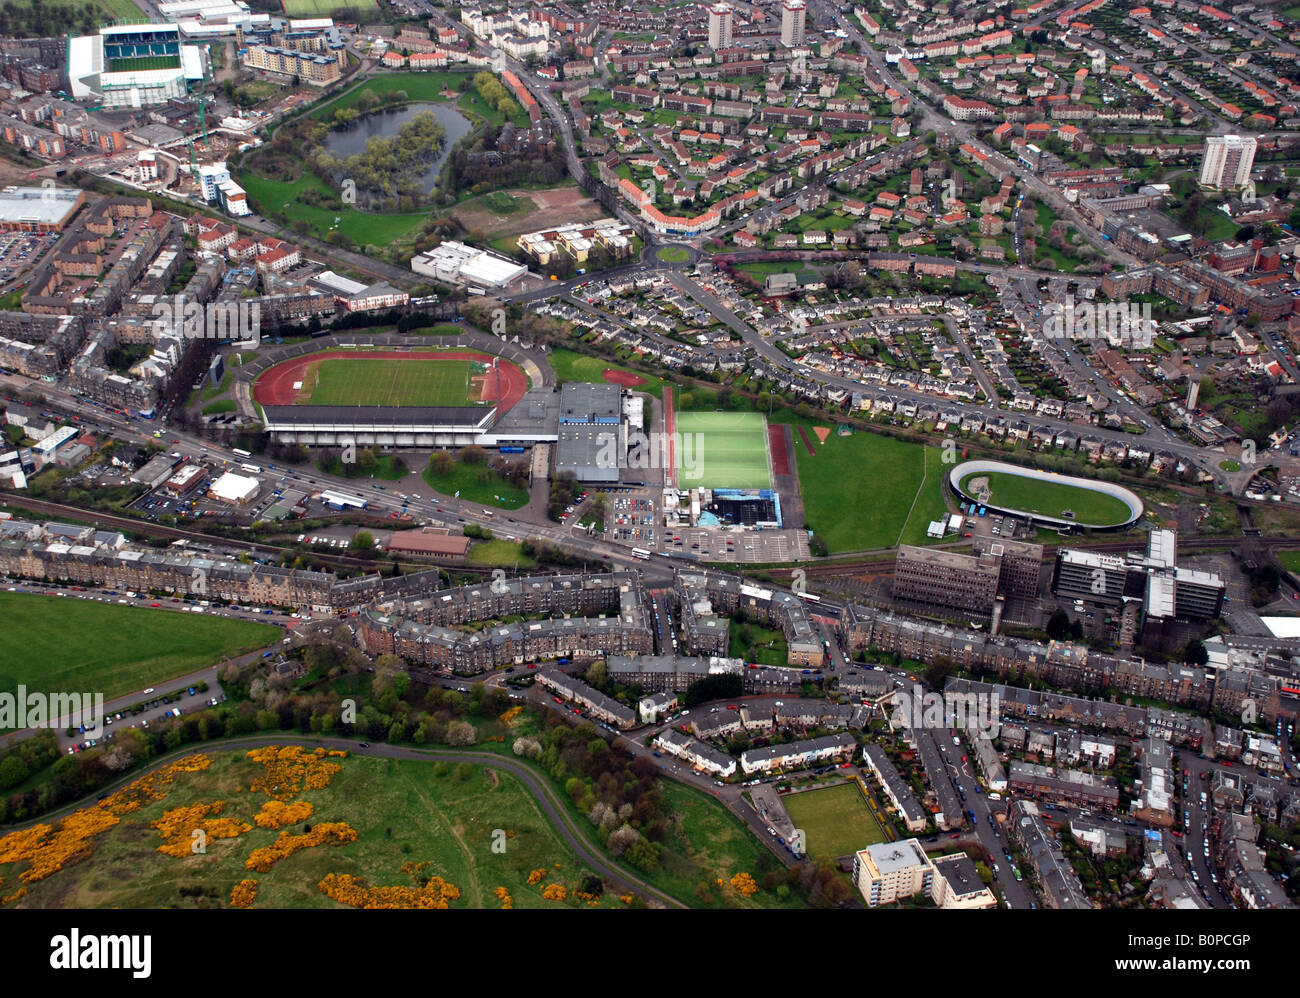 Aerial view of Edinburgh showing three stadia, Meadowbank Athletics Track, Meadowbank Velodrome and Easter Road - Stock Image